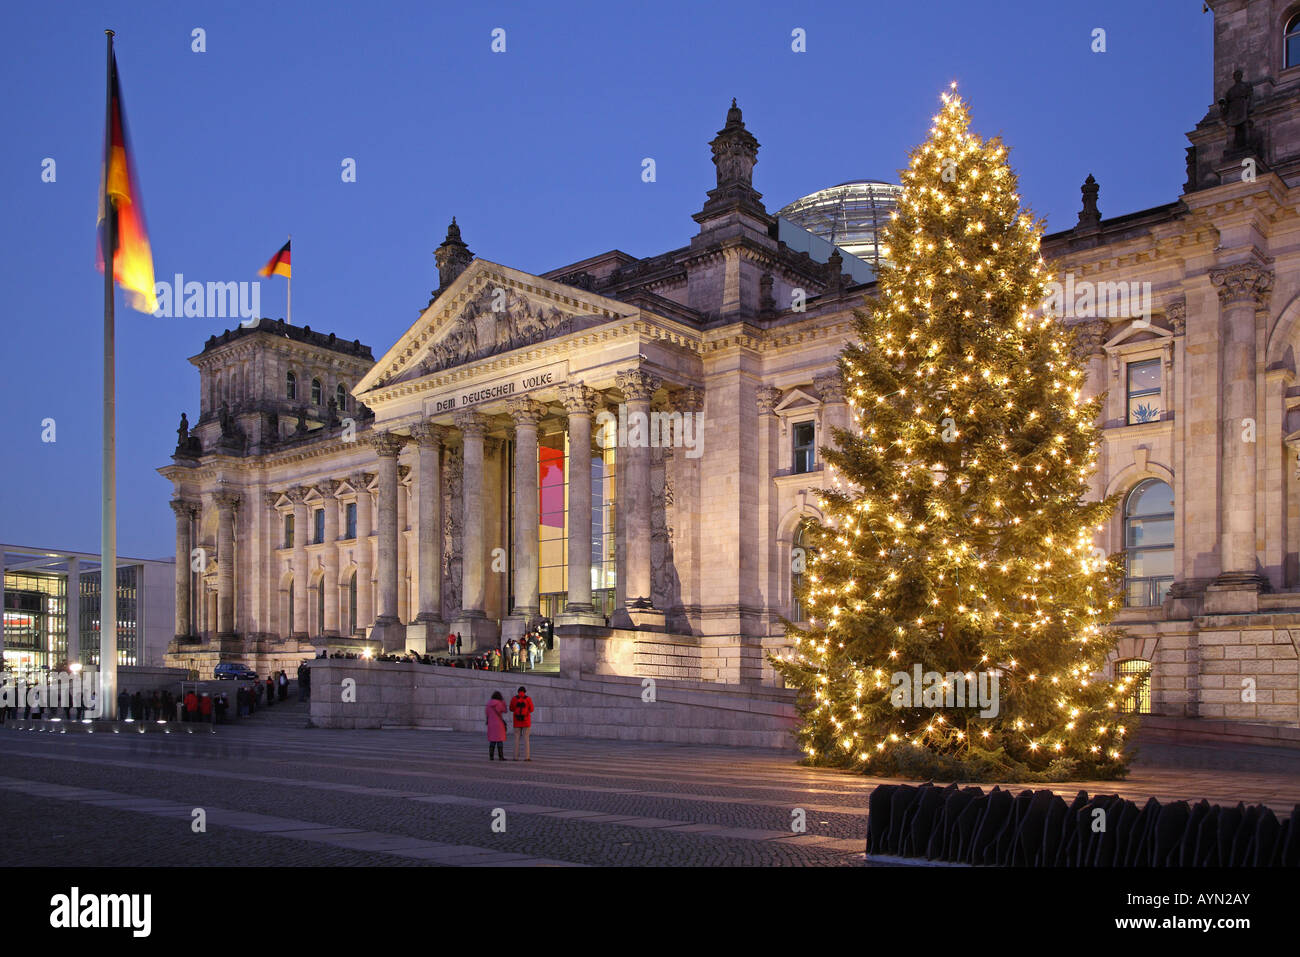 europa europe germany deutschland berlin mitte reichstag weihnachten stock photo royalty free. Black Bedroom Furniture Sets. Home Design Ideas